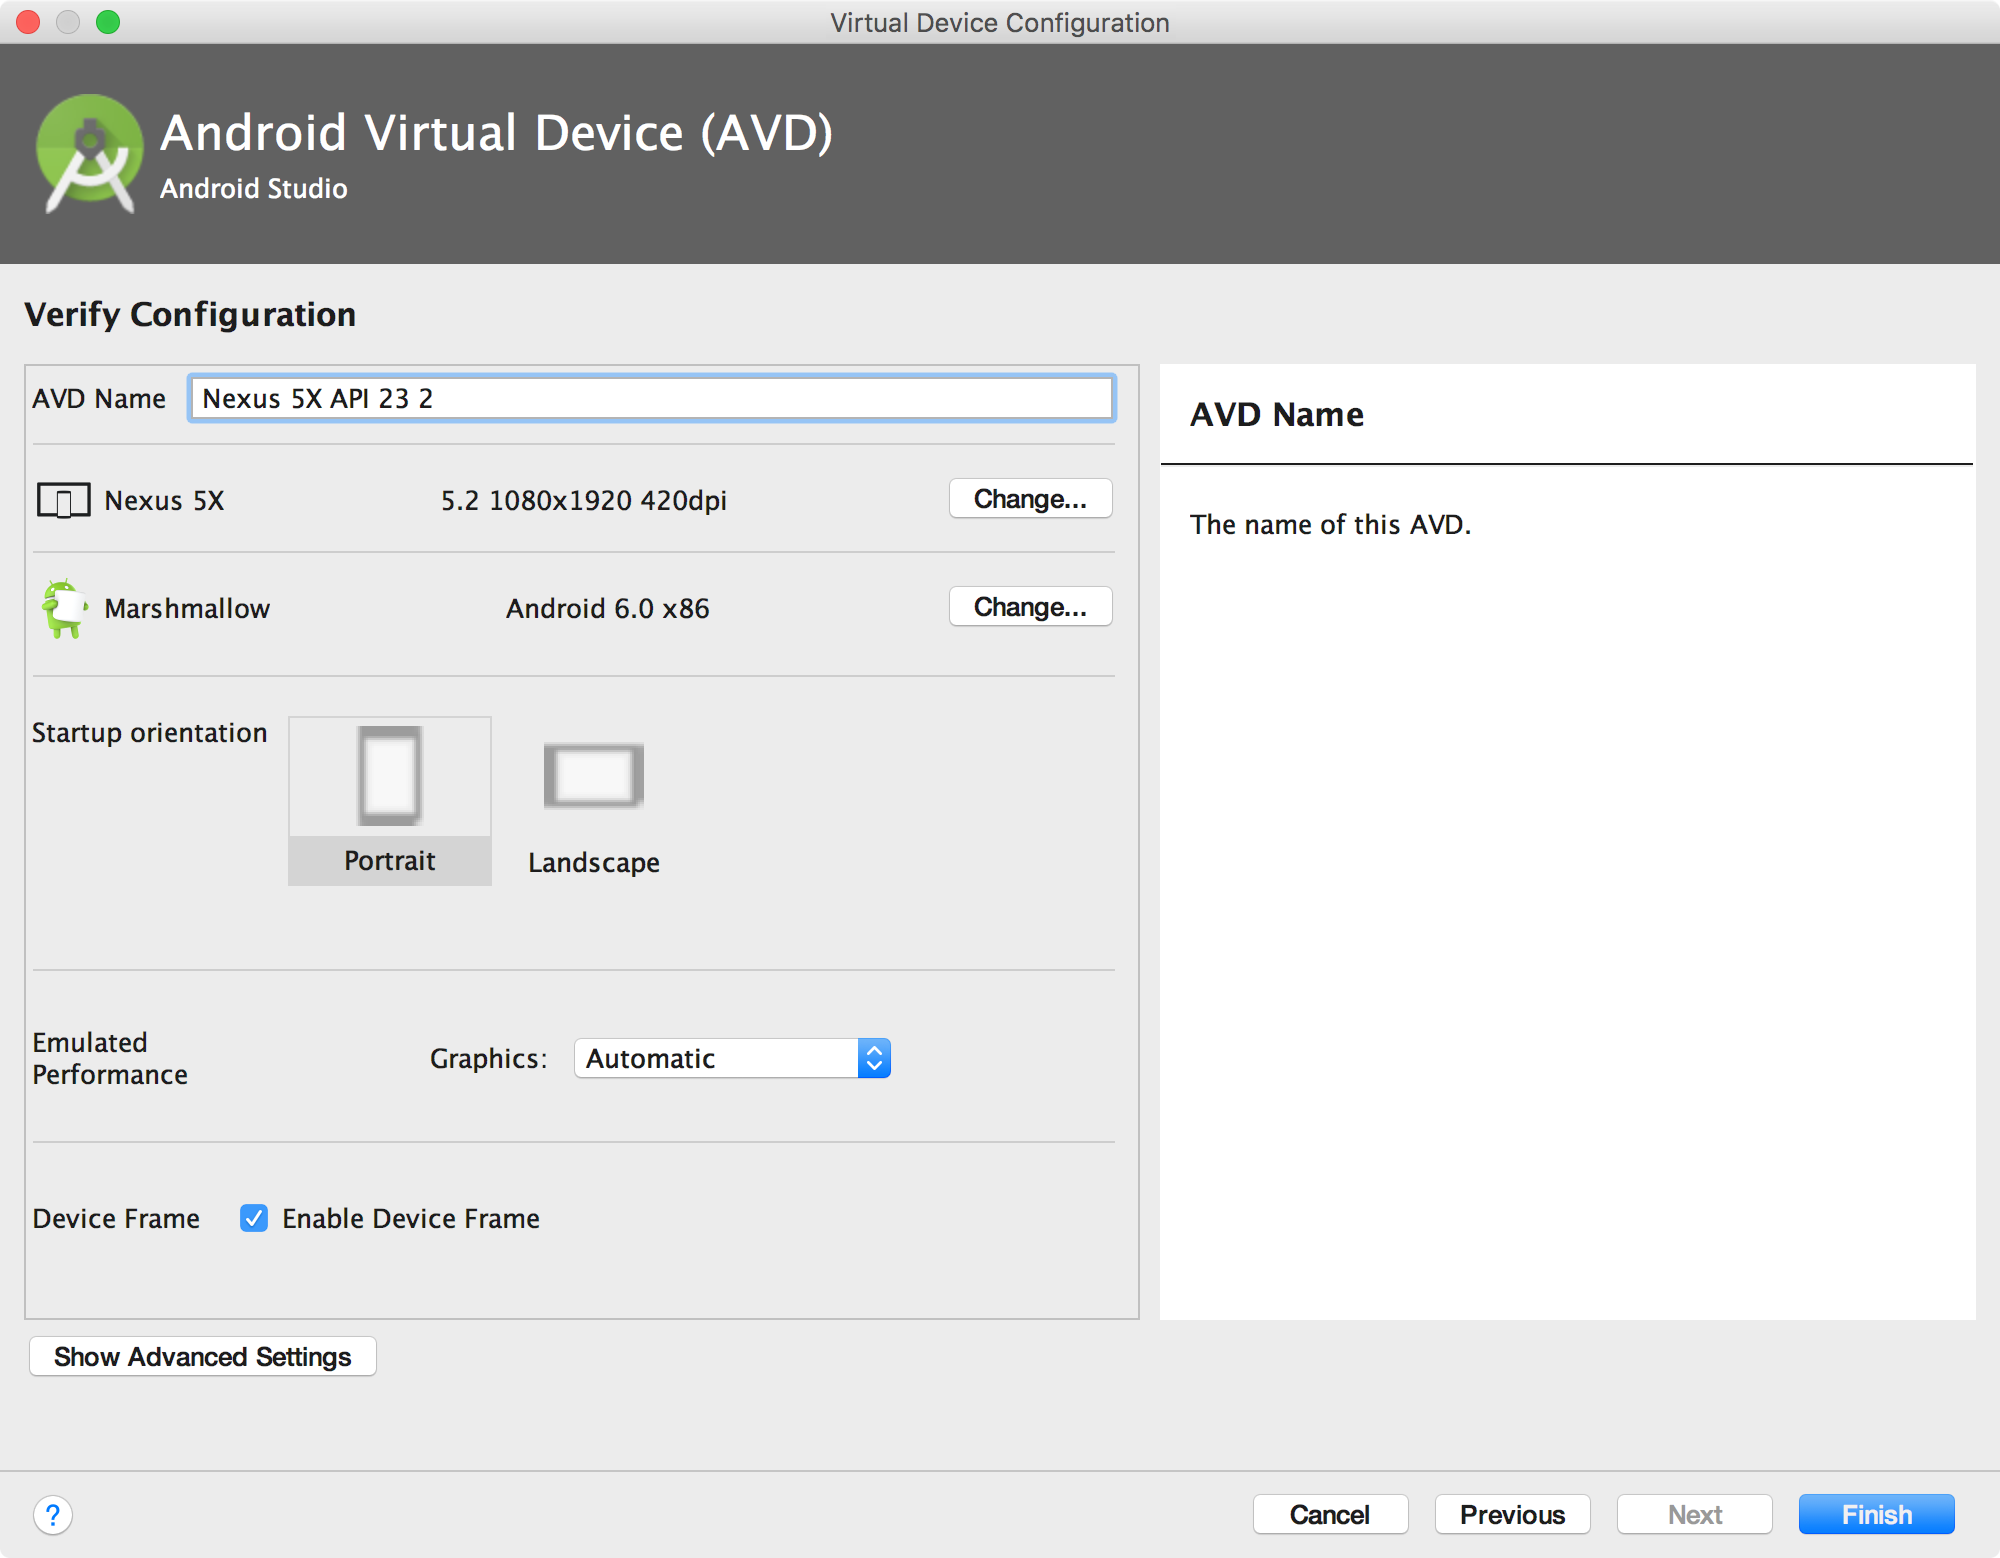 Verify Configuration page of the AVD Manager